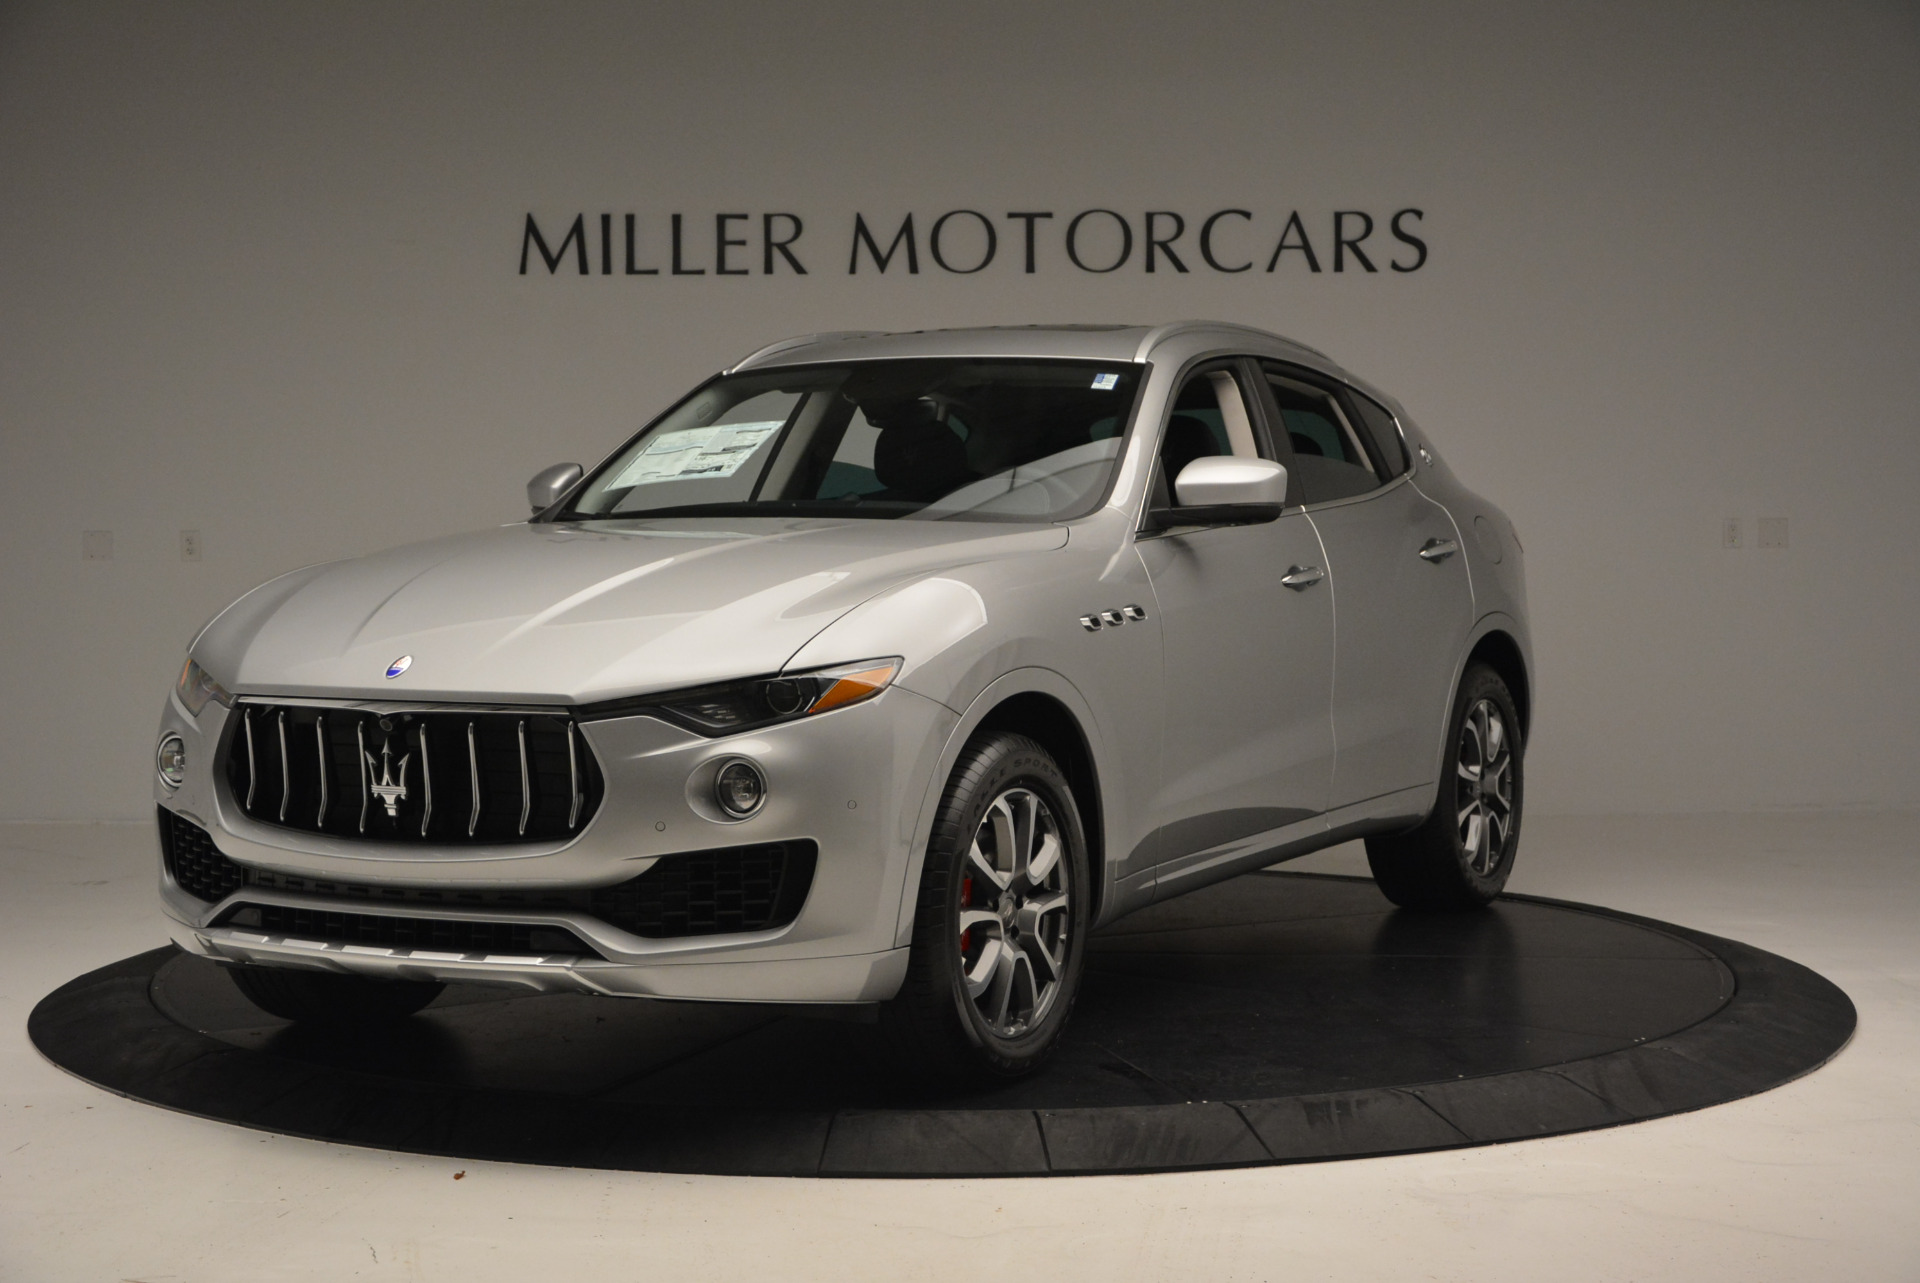 New 2017 Maserati Levante 350hp For Sale In Greenwich, CT 584_main